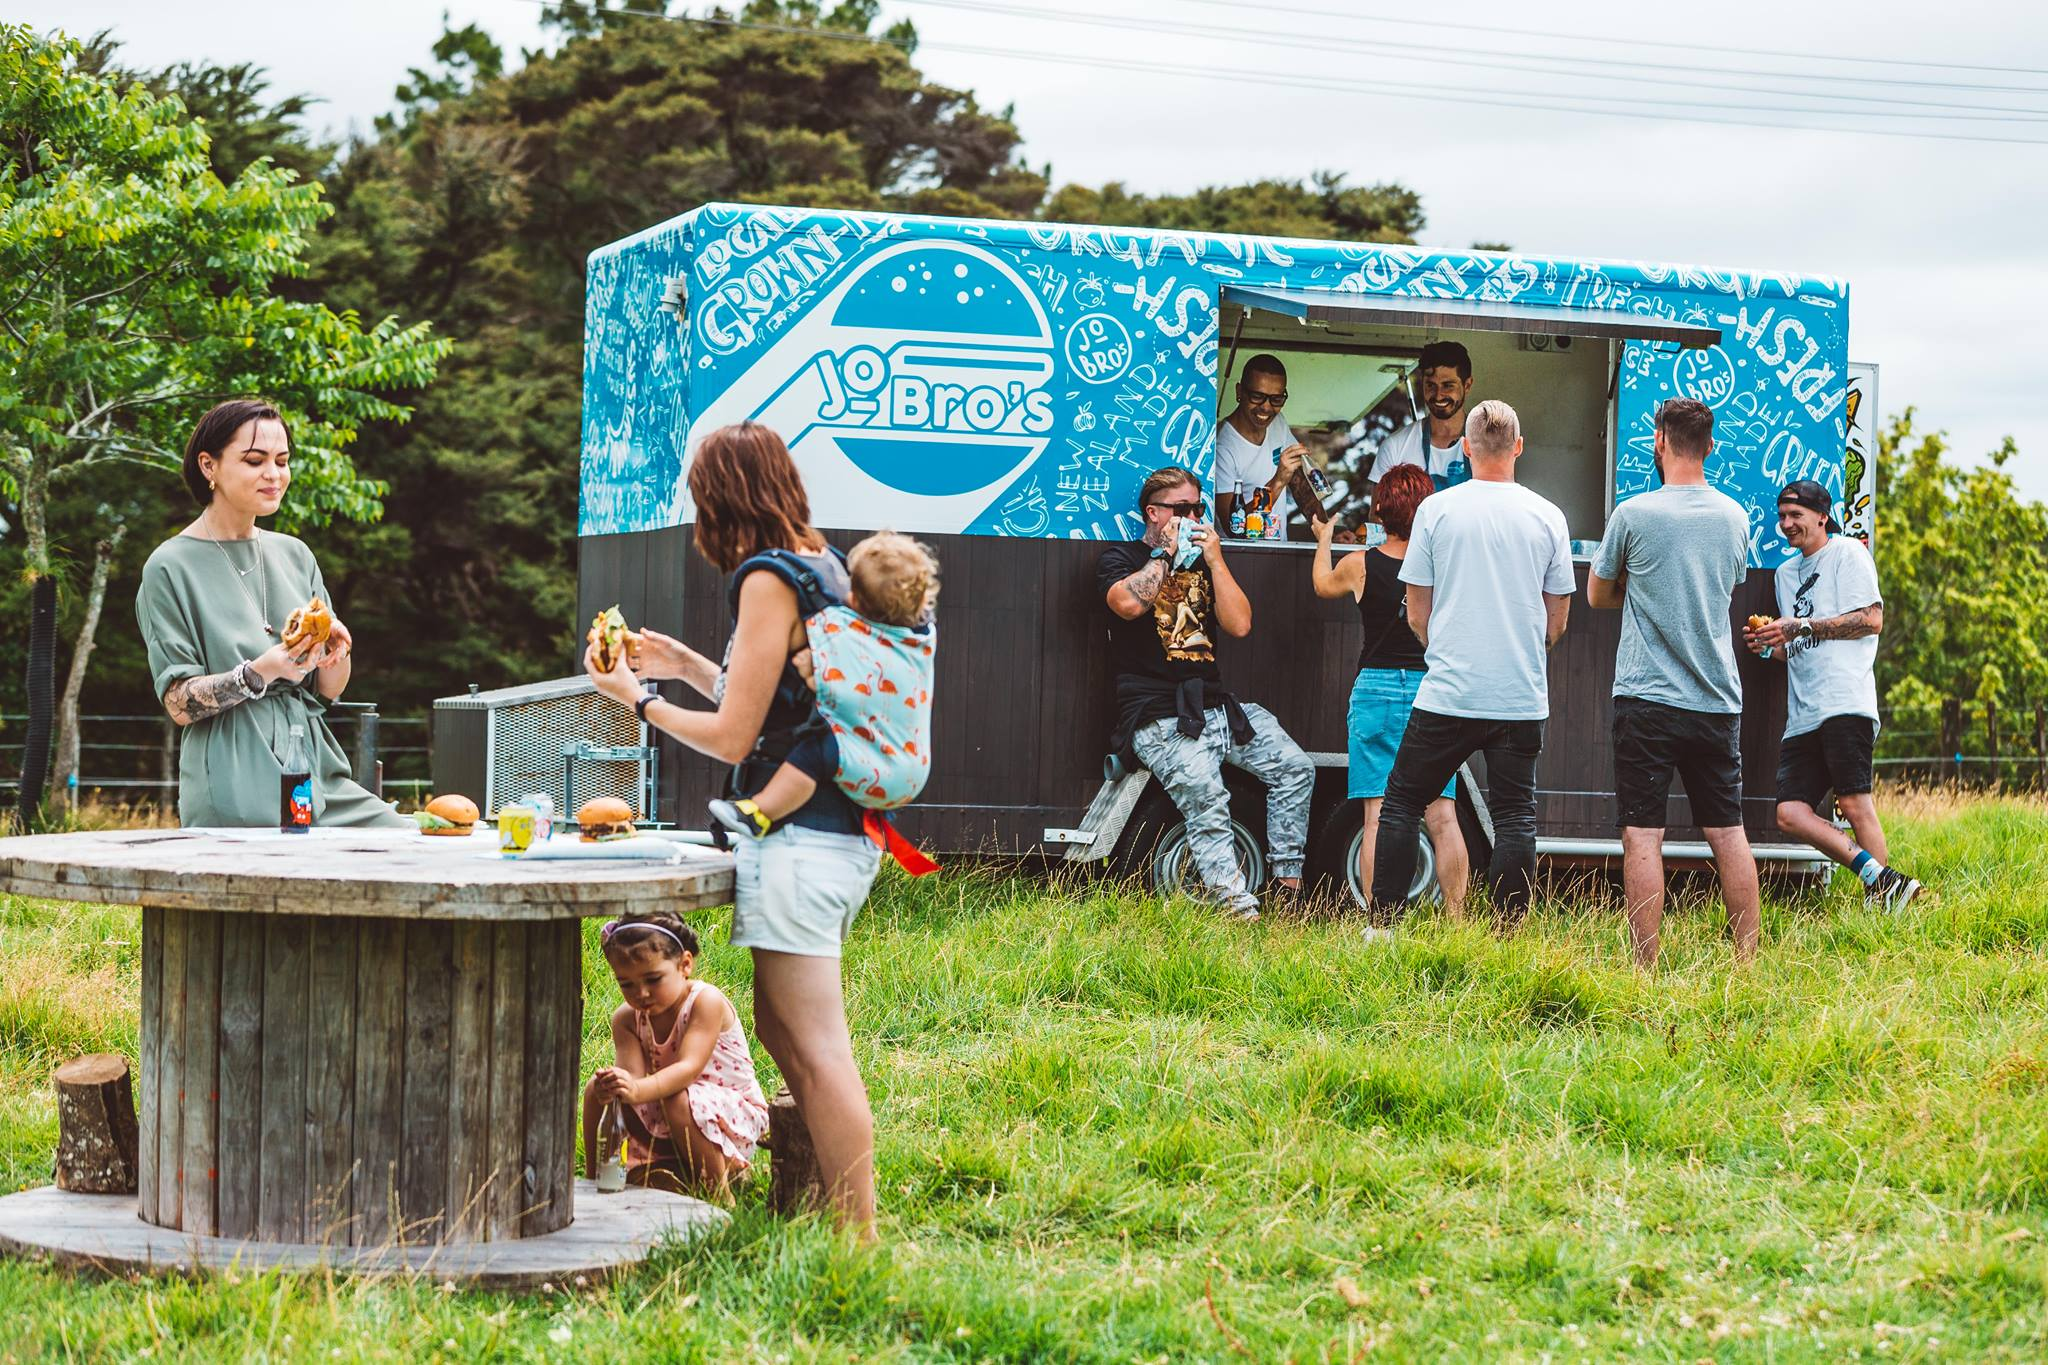 Hire Food Trucks For Your Next Party With This Auckland Event Planning Expert